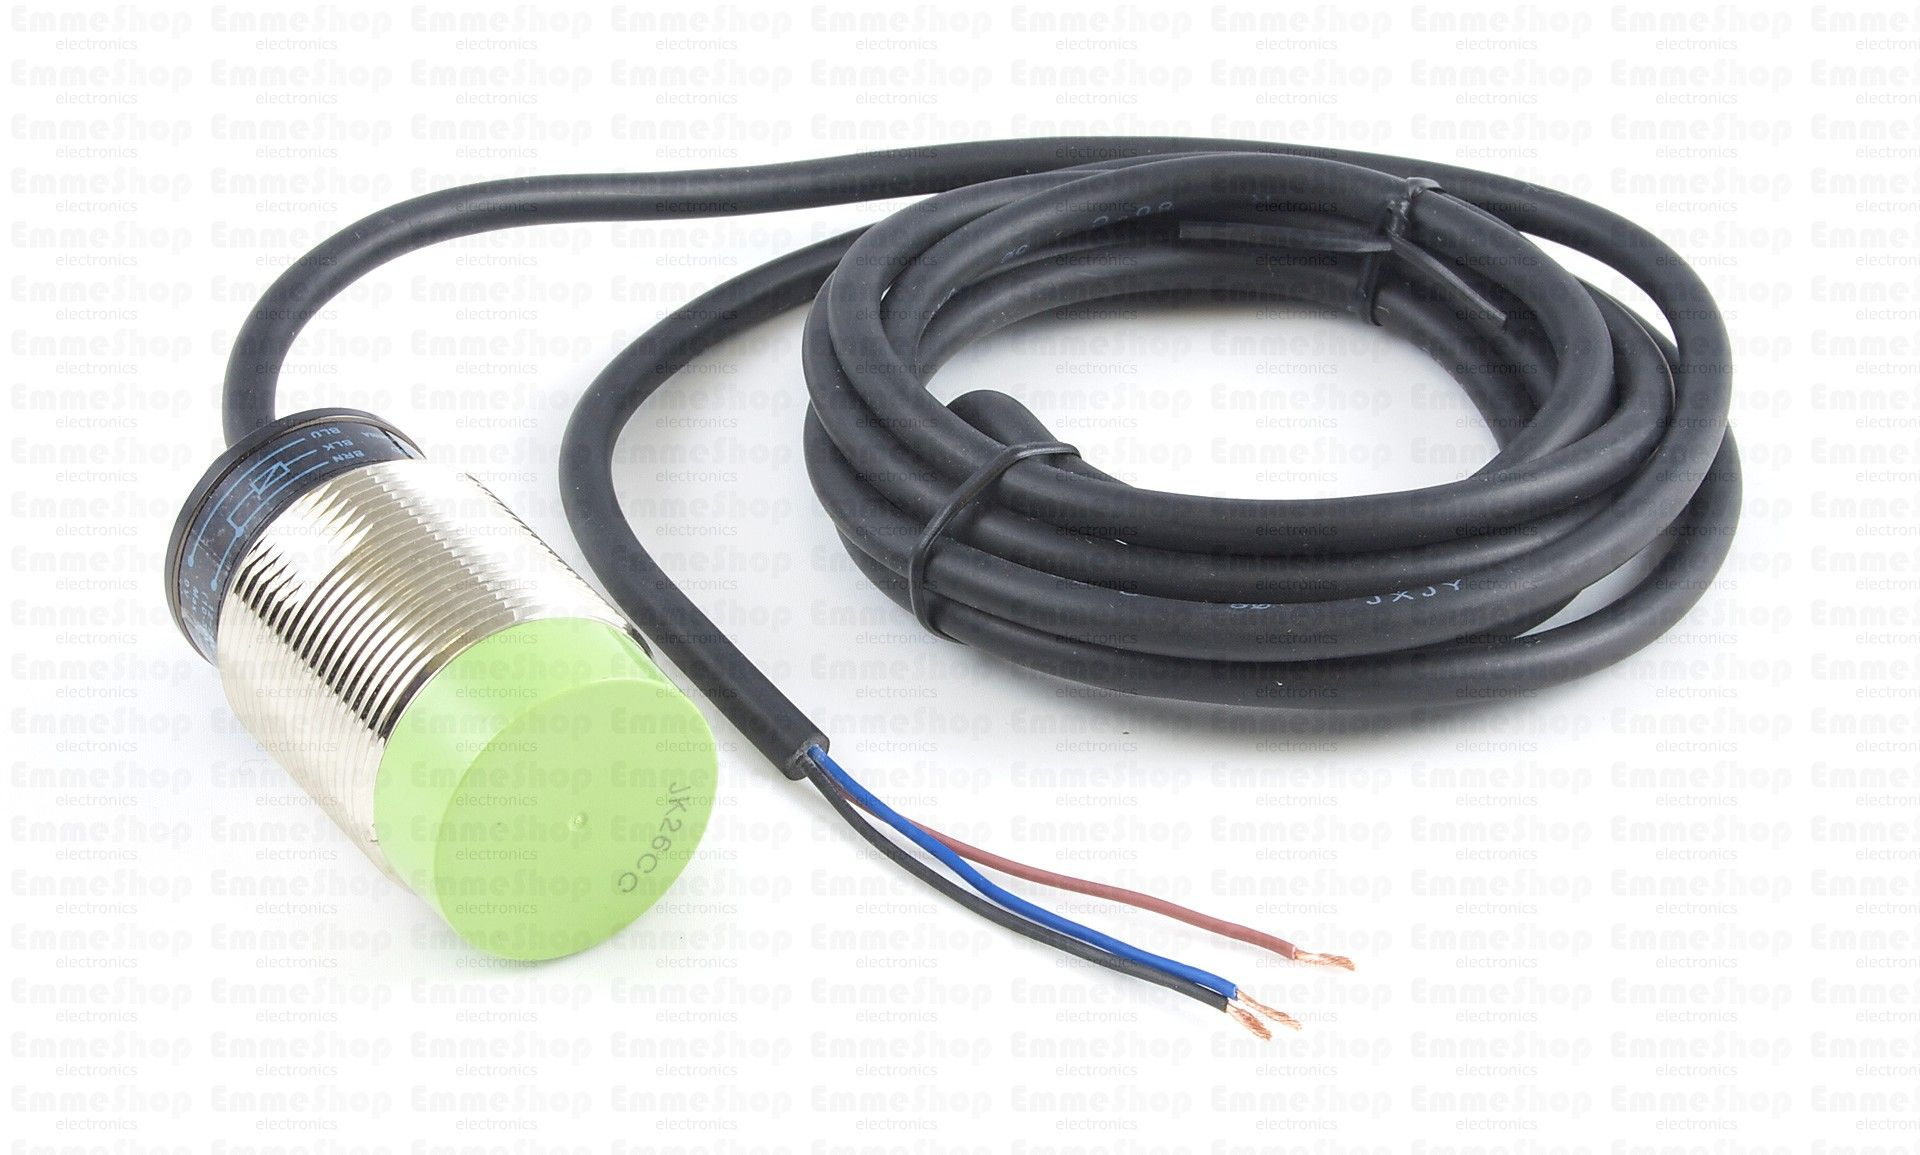 3527_0 - Autonics PR30-15DN Inductive Proximity Sensor - 15mm This inductive sensor can detect metallic objects within 15mm and behaves like a switch that connects to a digital input.